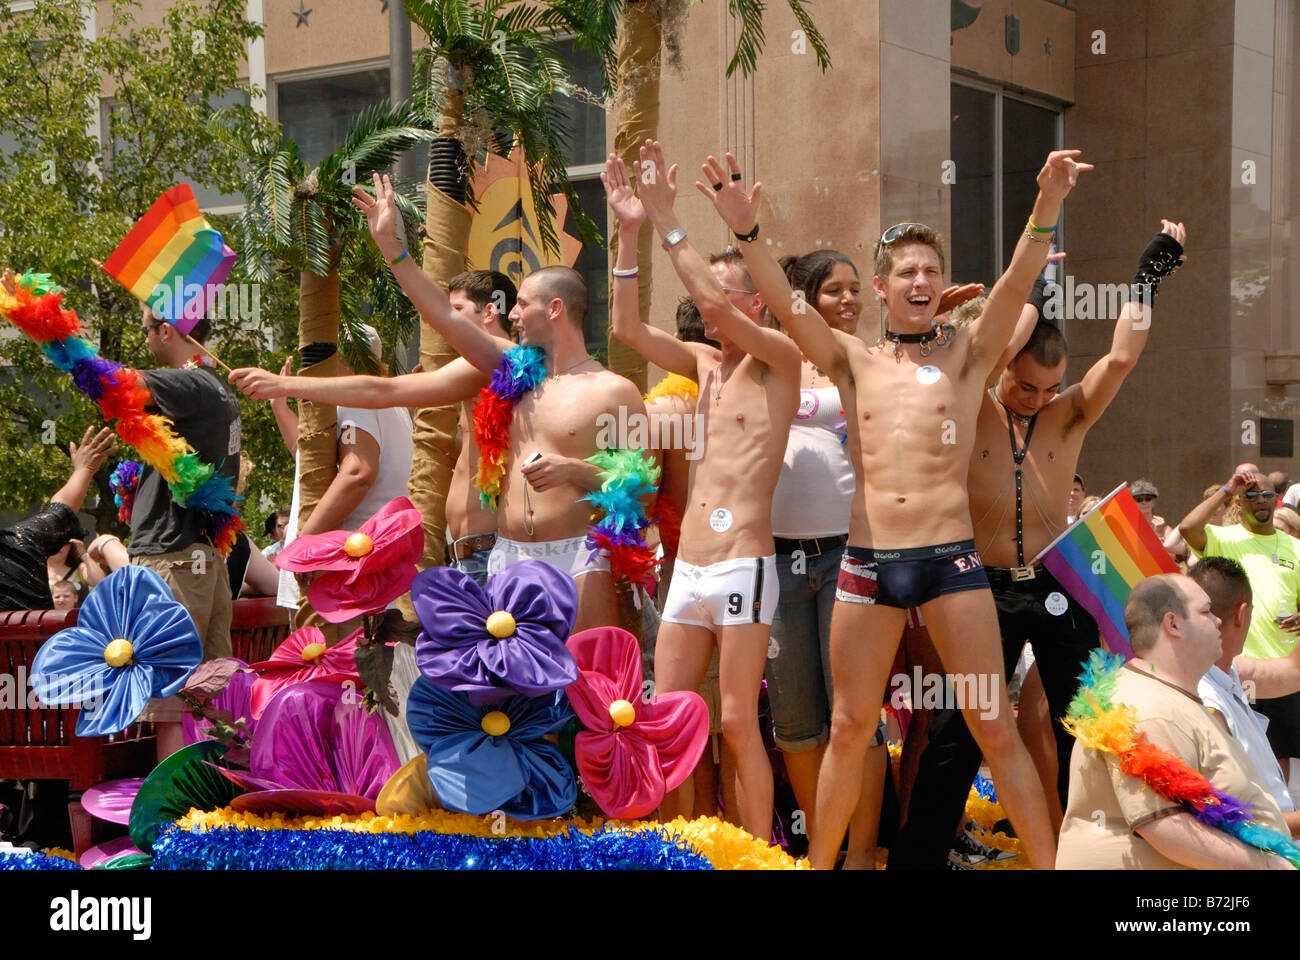 Gay pride parade columbus